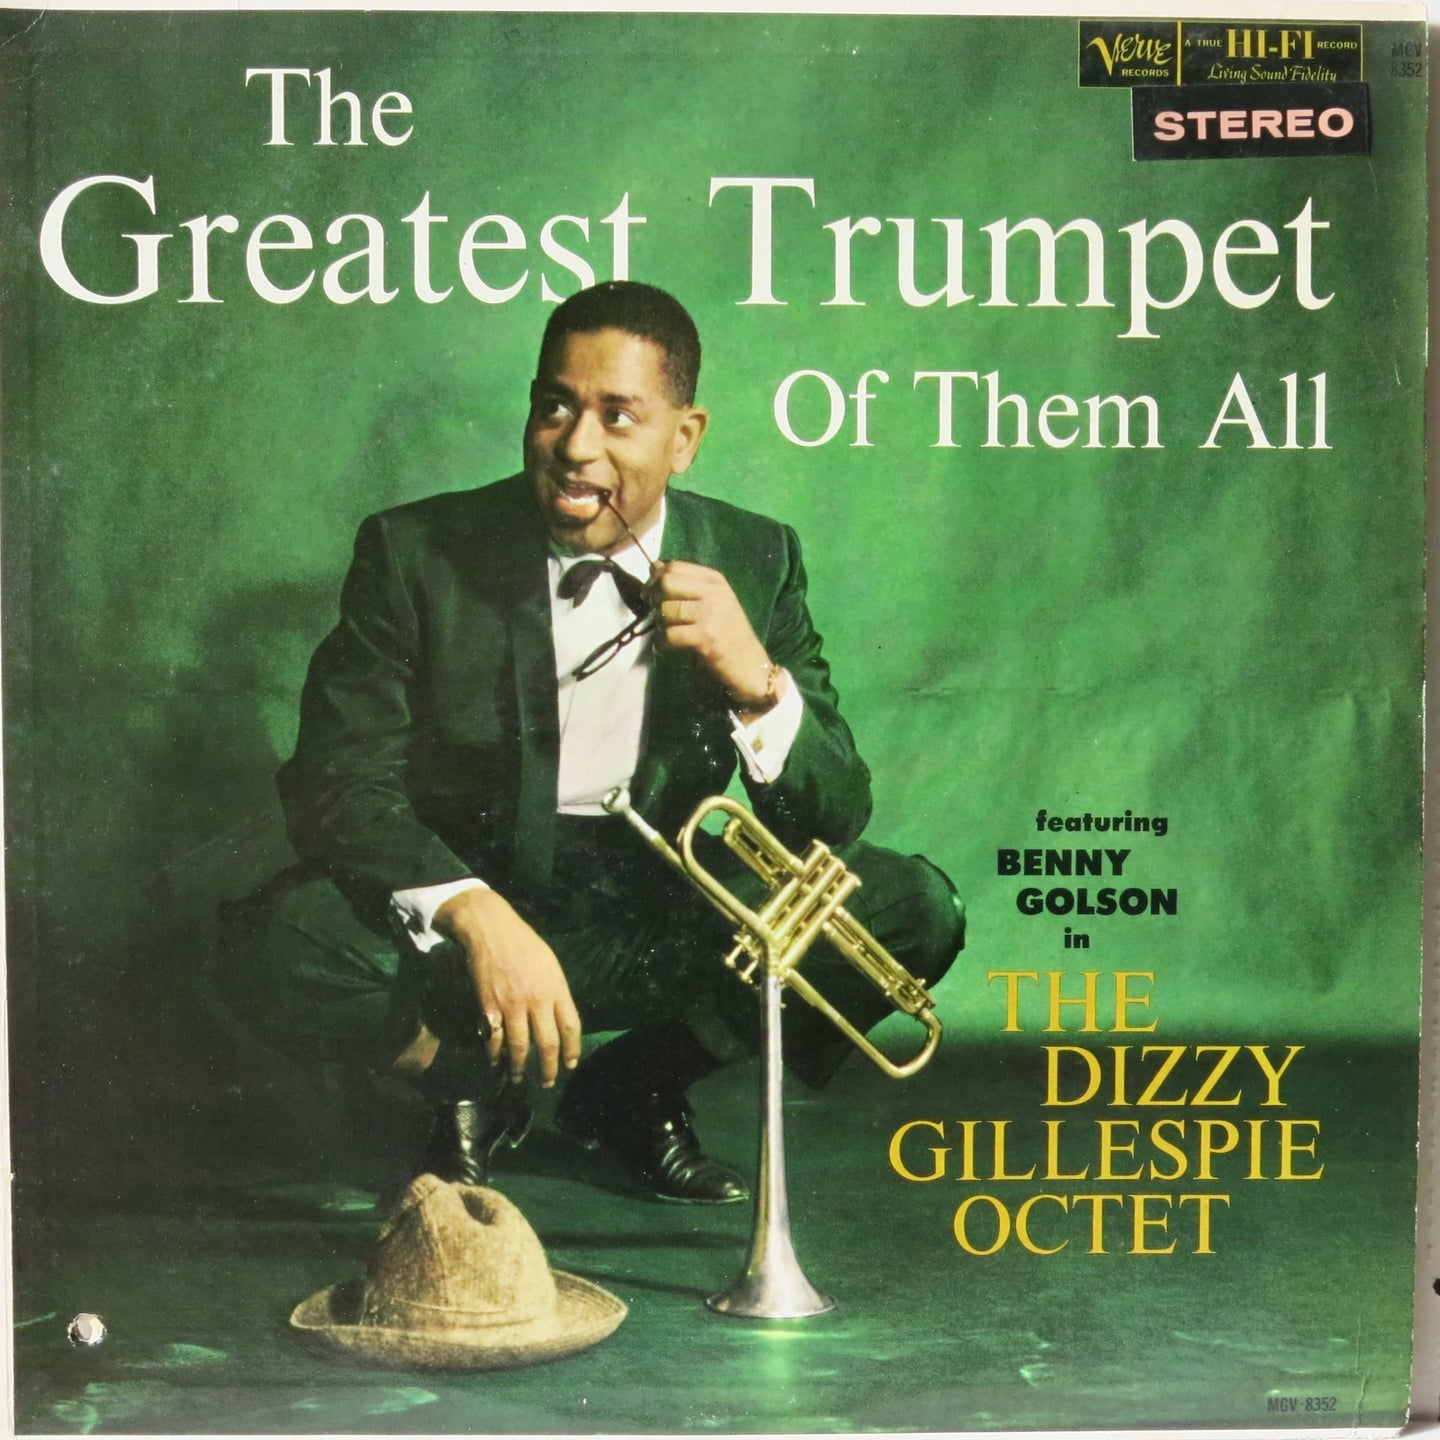 The Dizzy Gillespie Octet Featuring Benny Golson ‎– The Greatest Trumpet Of Them All